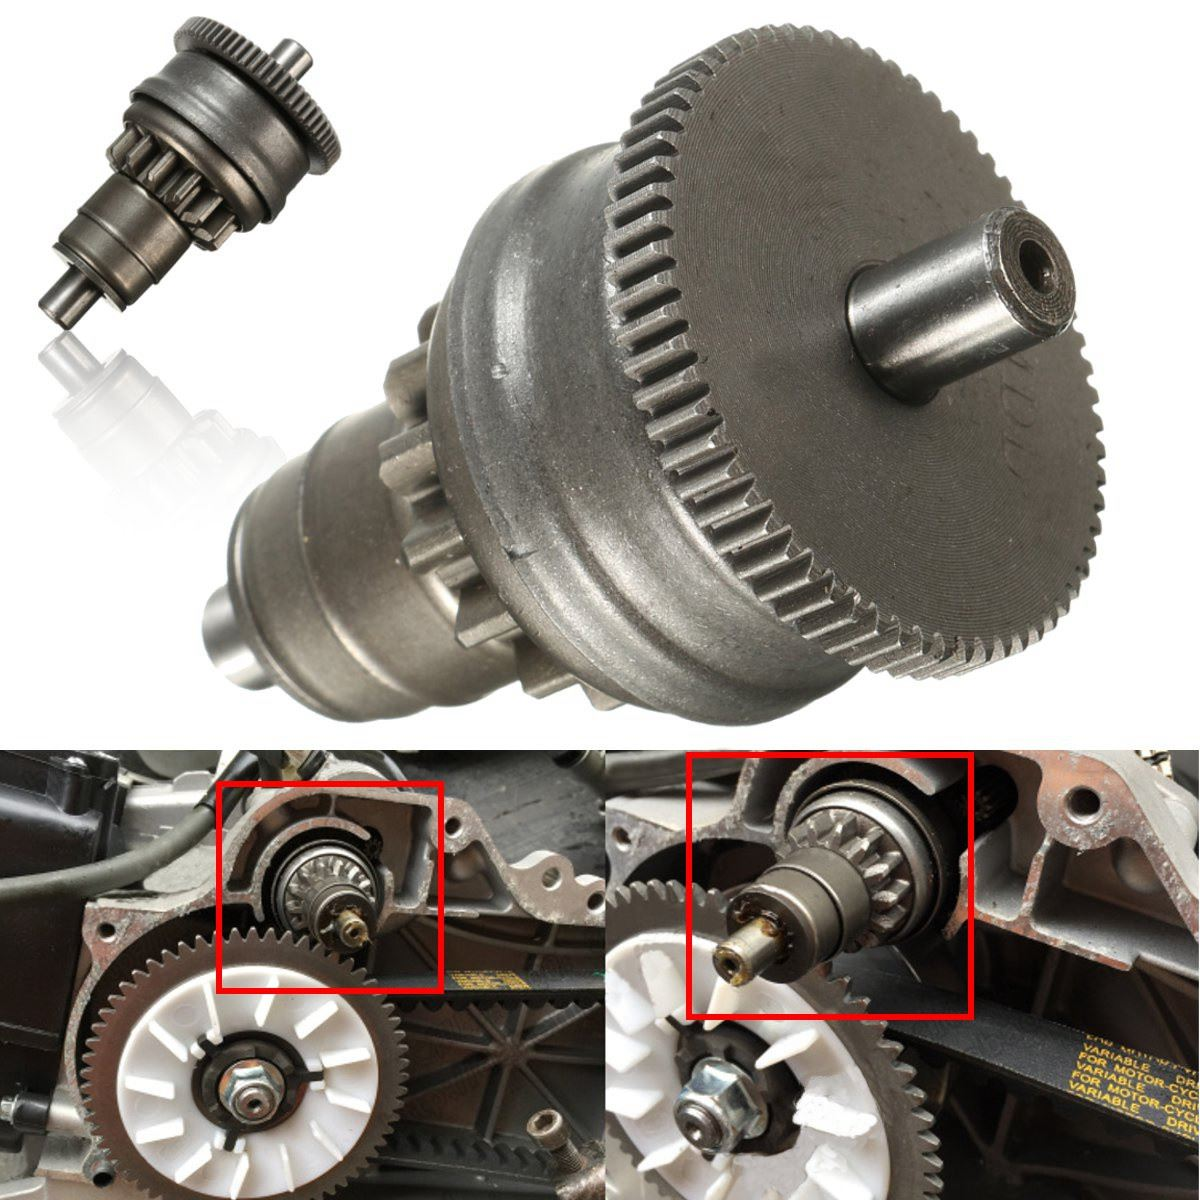 small resolution of chrome starter motor clutch gear assembly for gy6 49cc 50cc 139qmb scooter mopeds atv in engines from automobiles motorcycles on aliexpress com alibaba